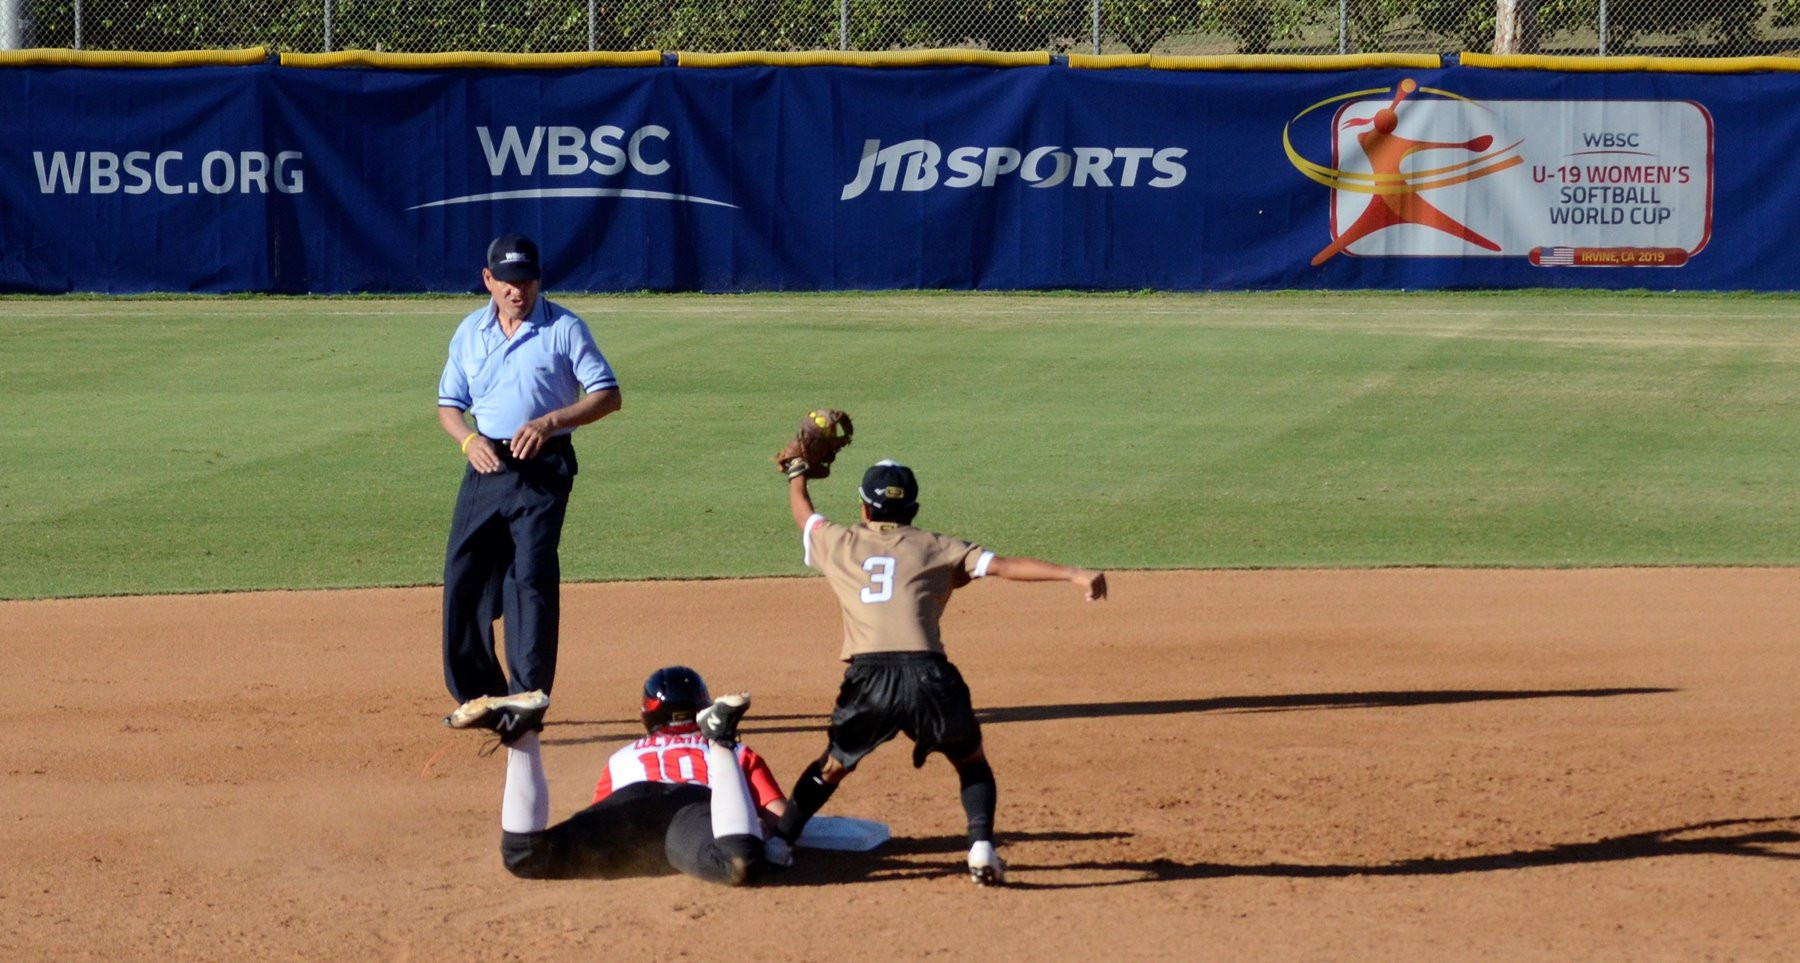 Japan have almost secured their spot in the final of the Under-19 Women's Softball World Cup in Irvine ©WBSC